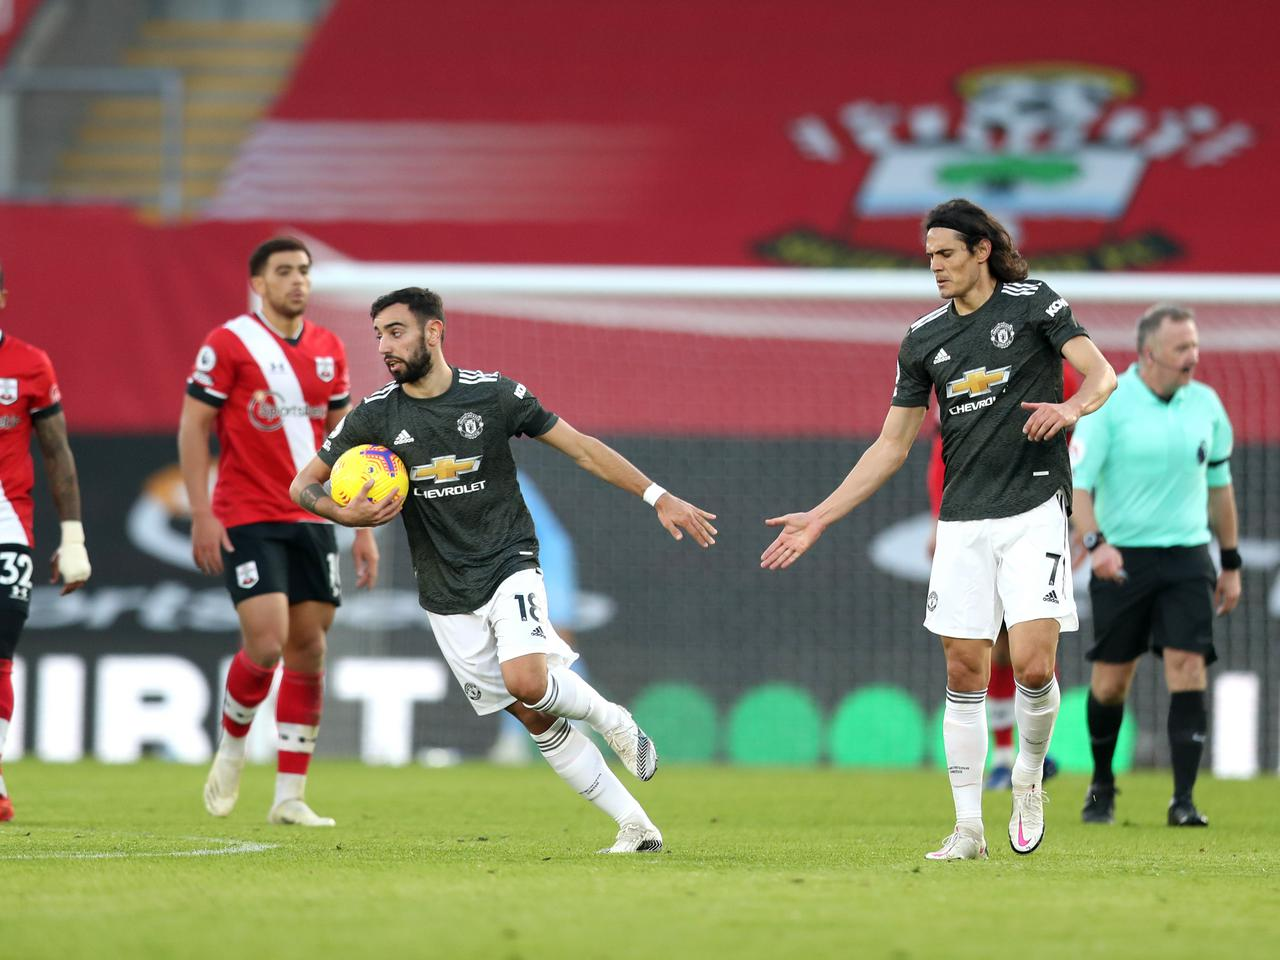 Bruno Fernandes and Edinson Cavani inspired Man United to a come-from-behind win against Southampton